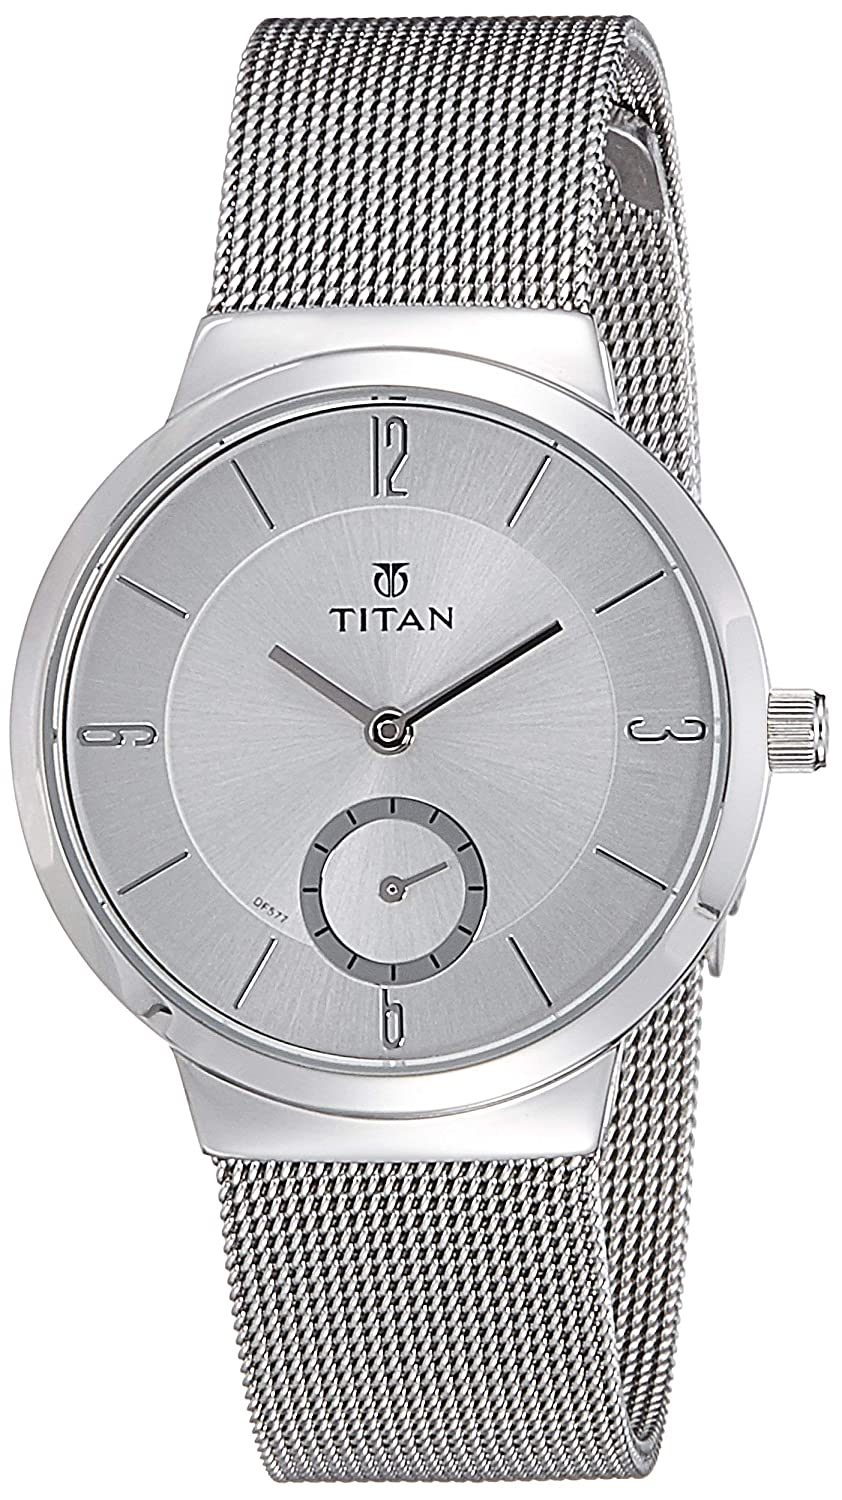 Titan Women s Contemporary Chronograph Multi Function Work Wear,Gold Silver Metal Leather Strap, Mineral Crystal, Quartz, Analog, Water Resistant Wrist Watch